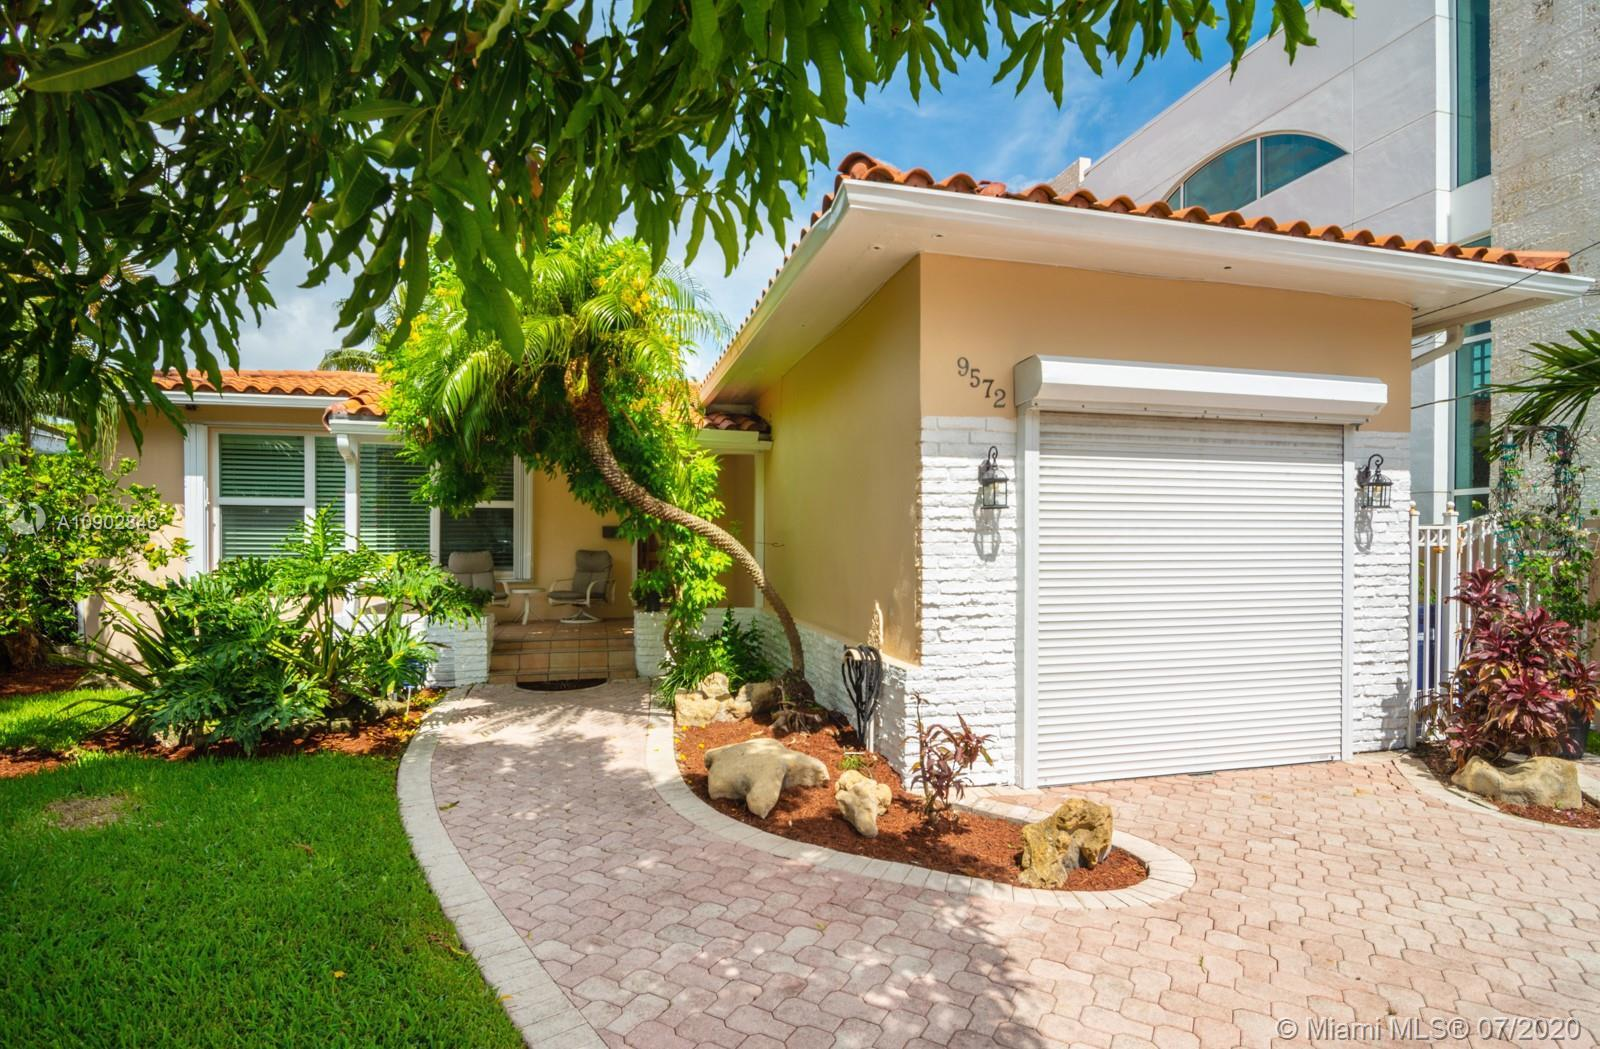 Stunning 3 bedroom 2 bath MIMO home steps to the beach-literally 1000 ft to the sand across from Bal